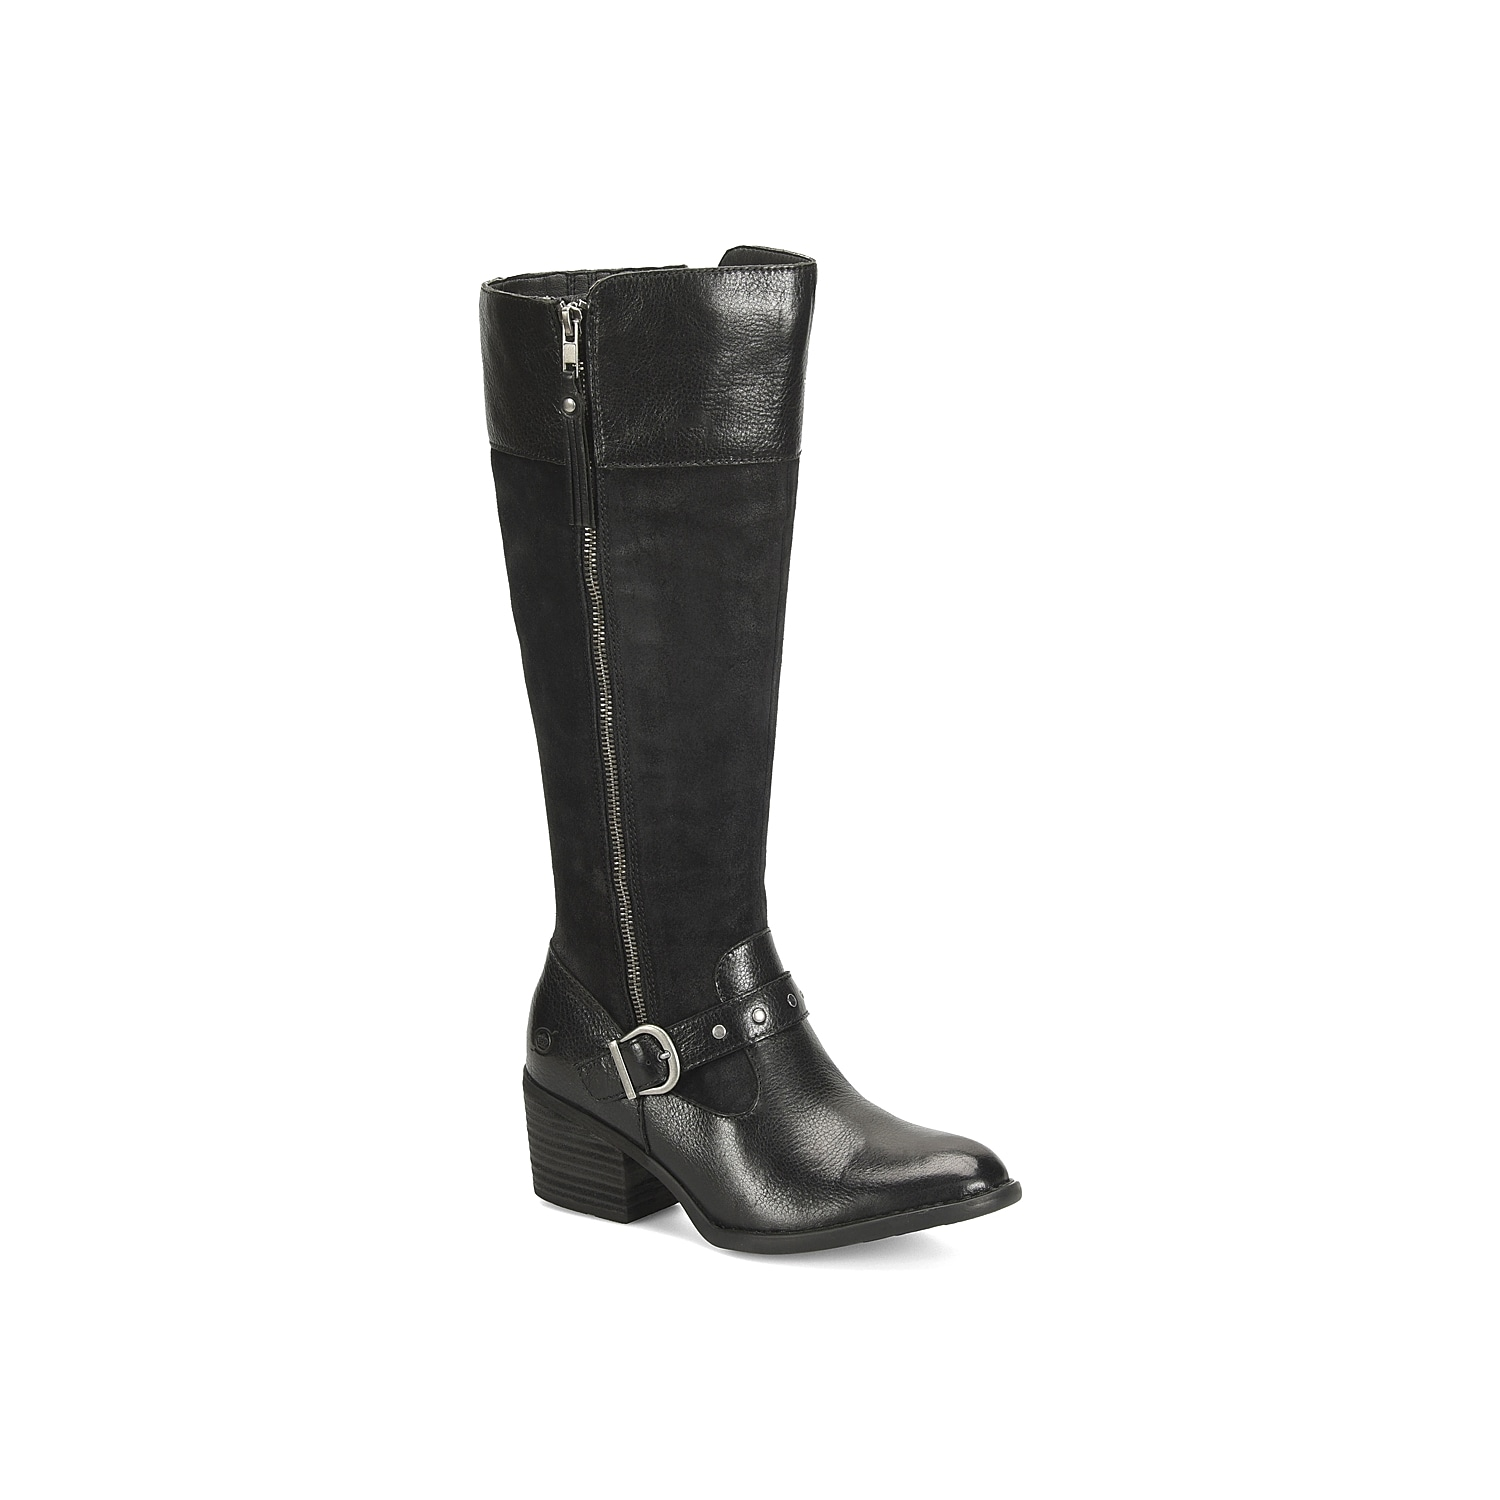 Show off classic style with any cool weather look with the Alize riding boot from Born. The mixed material upper features natural distressing and a studded strap for a touch of edge. Click here for Boot Measuring Guide.